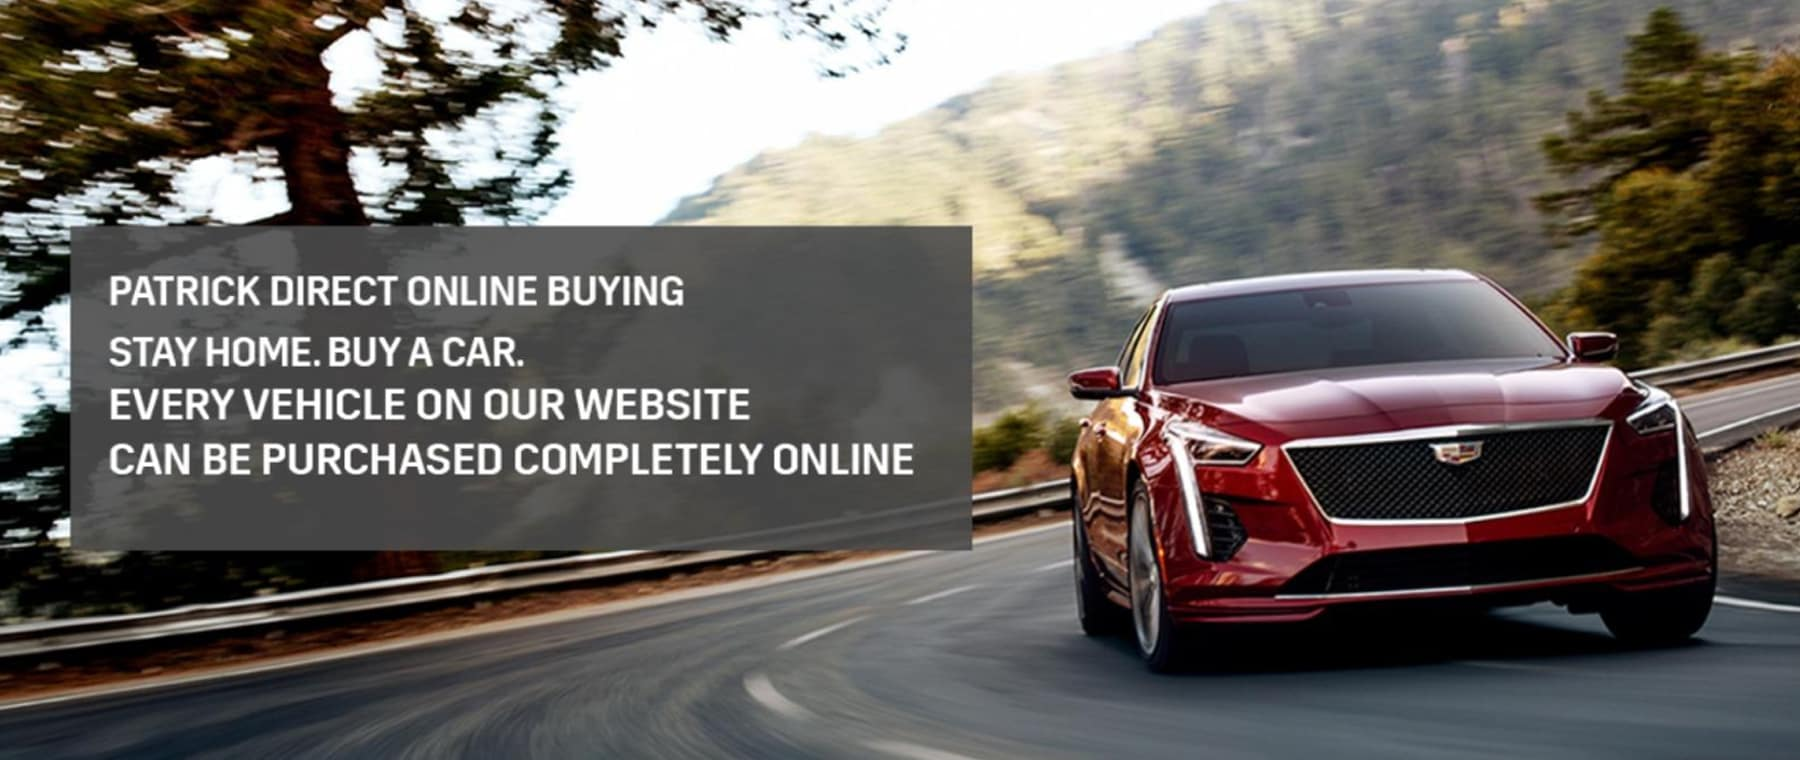 Patrick Direct Online Buying. Stay Home. Buy A Car. Every vehicle on our website can be purchased completely online.